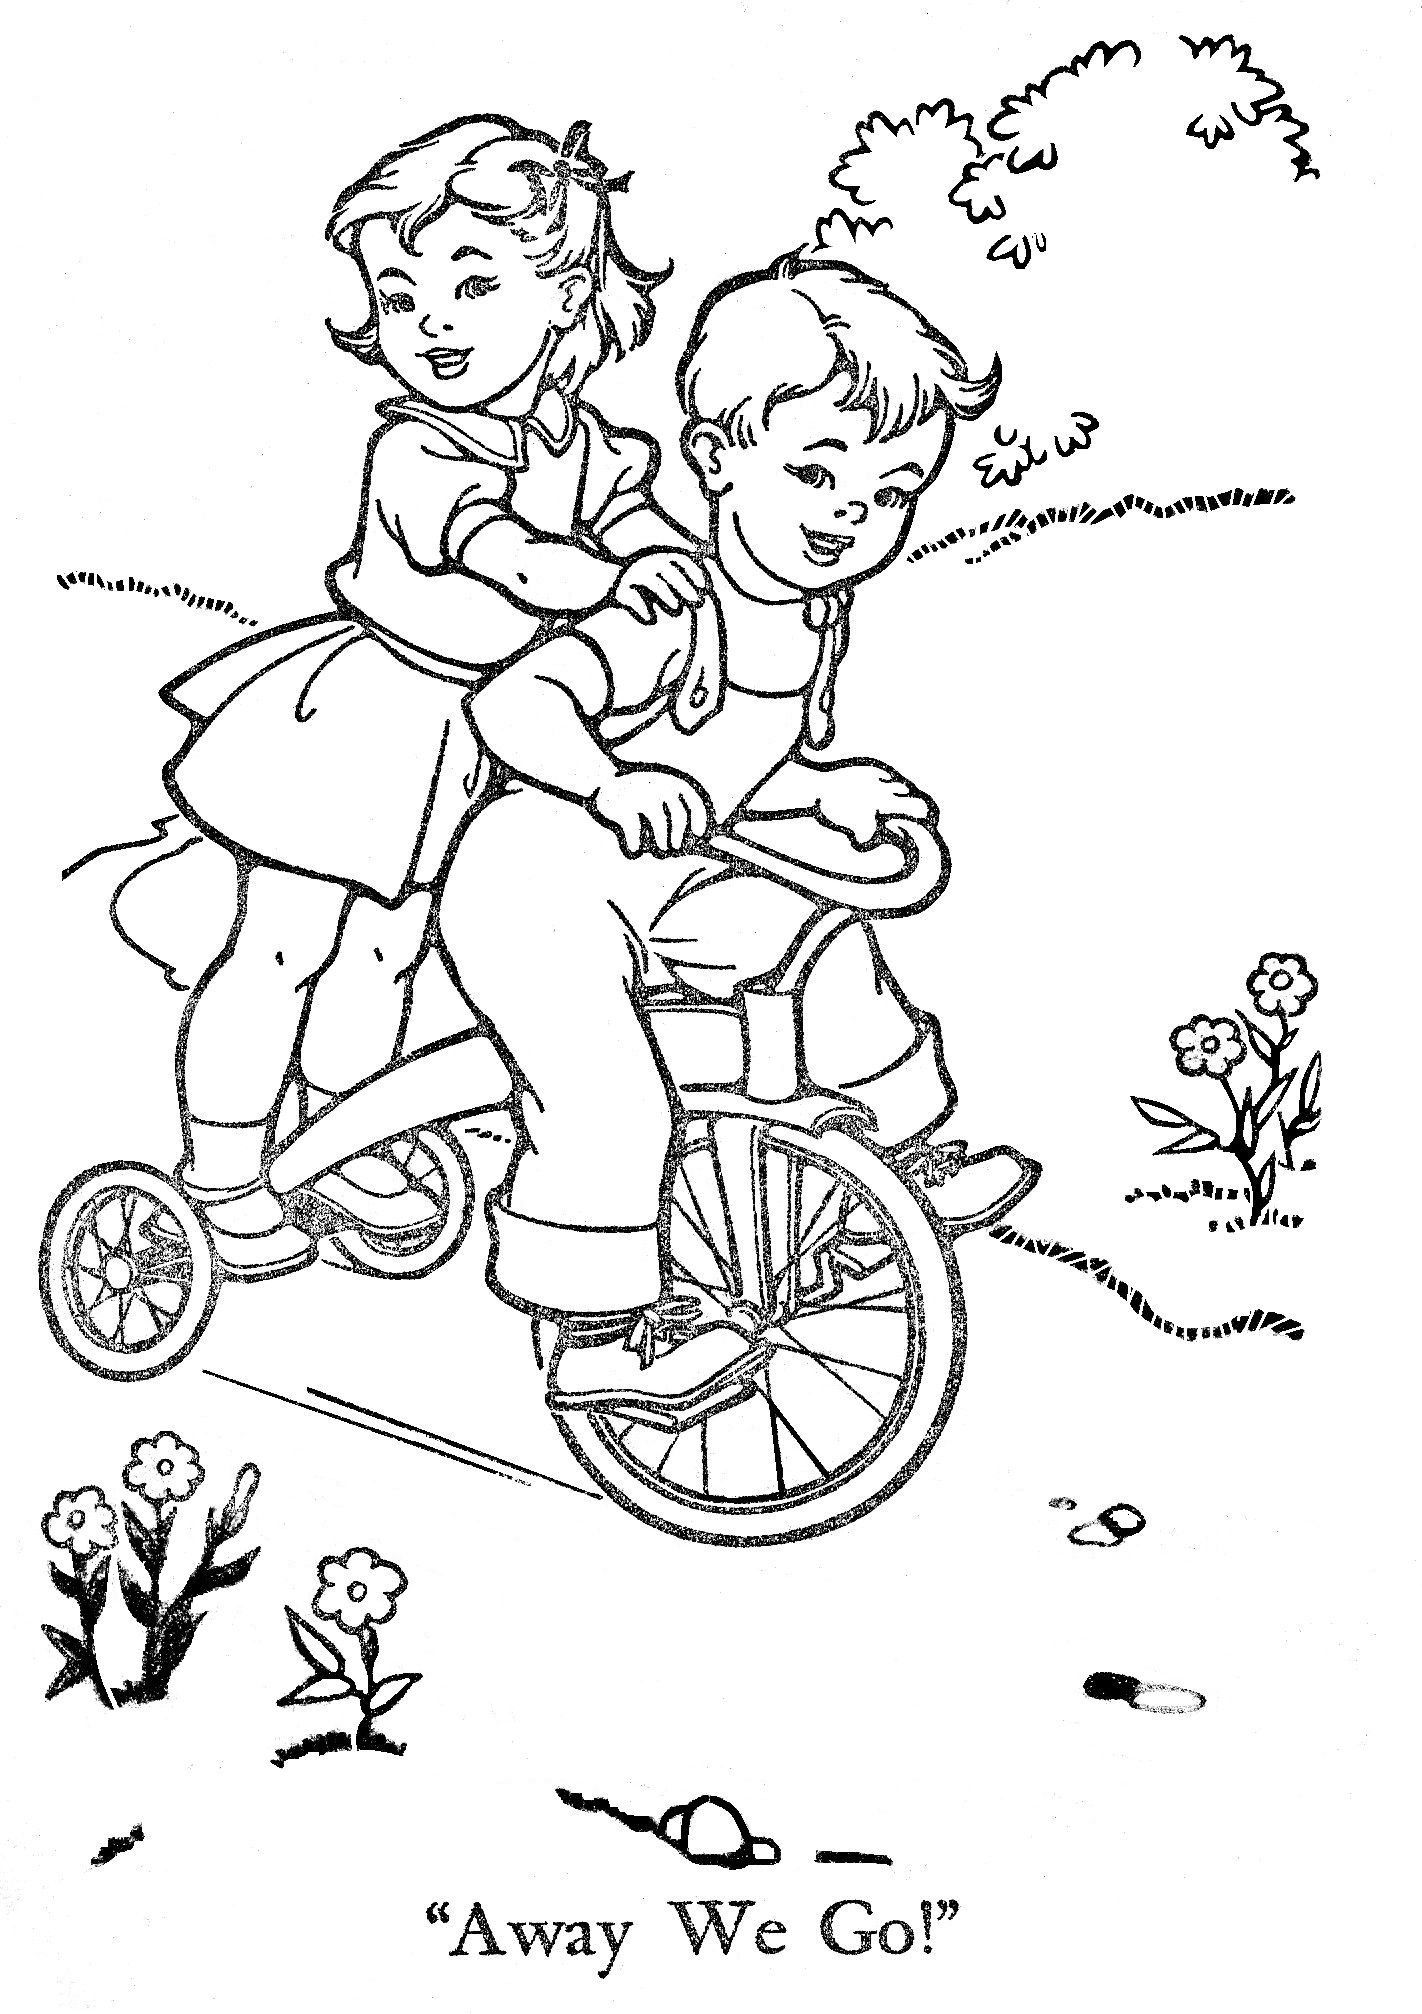 "vintage coloring pages Displaying 12> Images For   Vintage Coloring Pages | coloring  vintage coloring pages"" title=""vintage coloring pages Displaying 12> Images For   Vintage Coloring Pages 